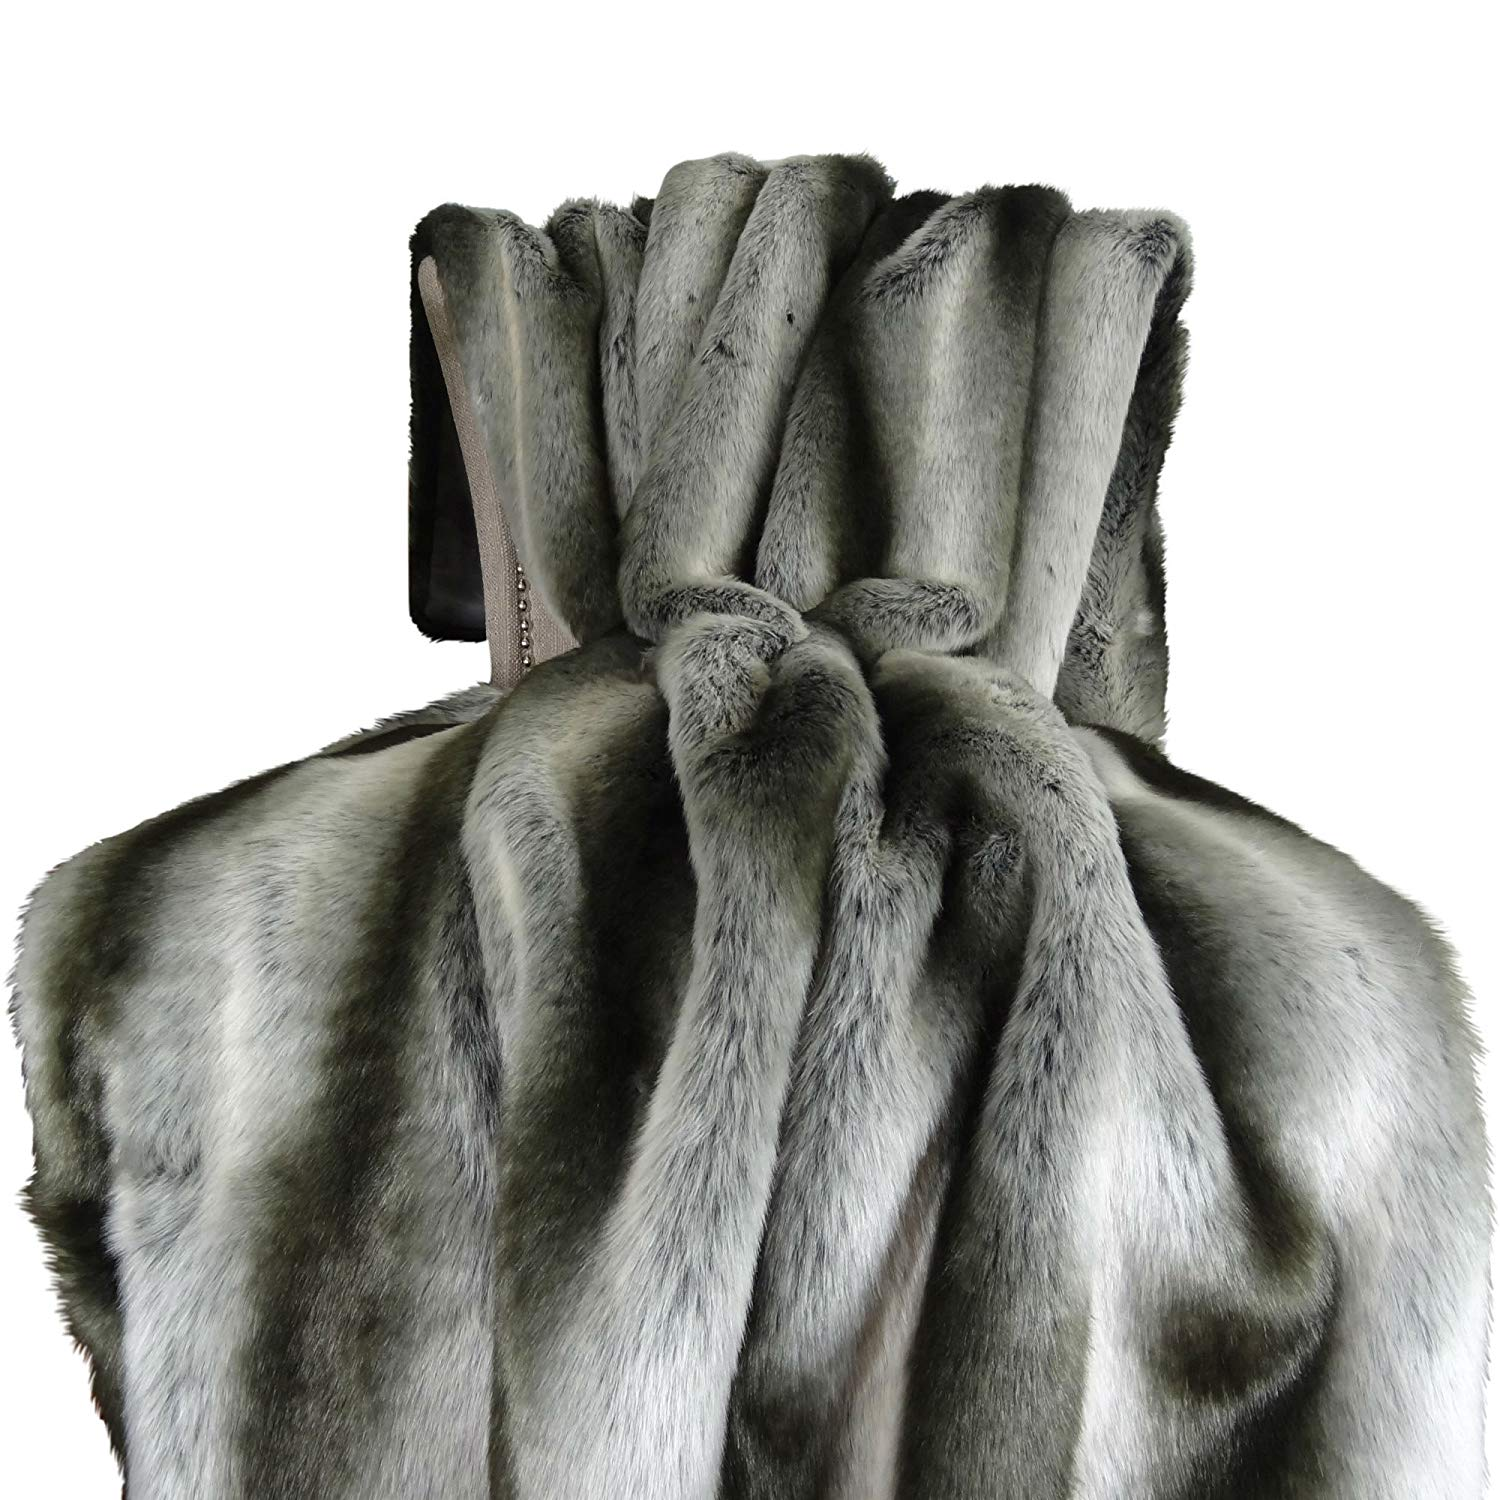 Thomas Collection Exotic Gray Chinchilla Faux Fur Throw Blanket & Bedspread - Gray Silver Chinchilla Fur - Gray Chinchilla Throw Blanket - Gray Silver, Made in USA, 16430